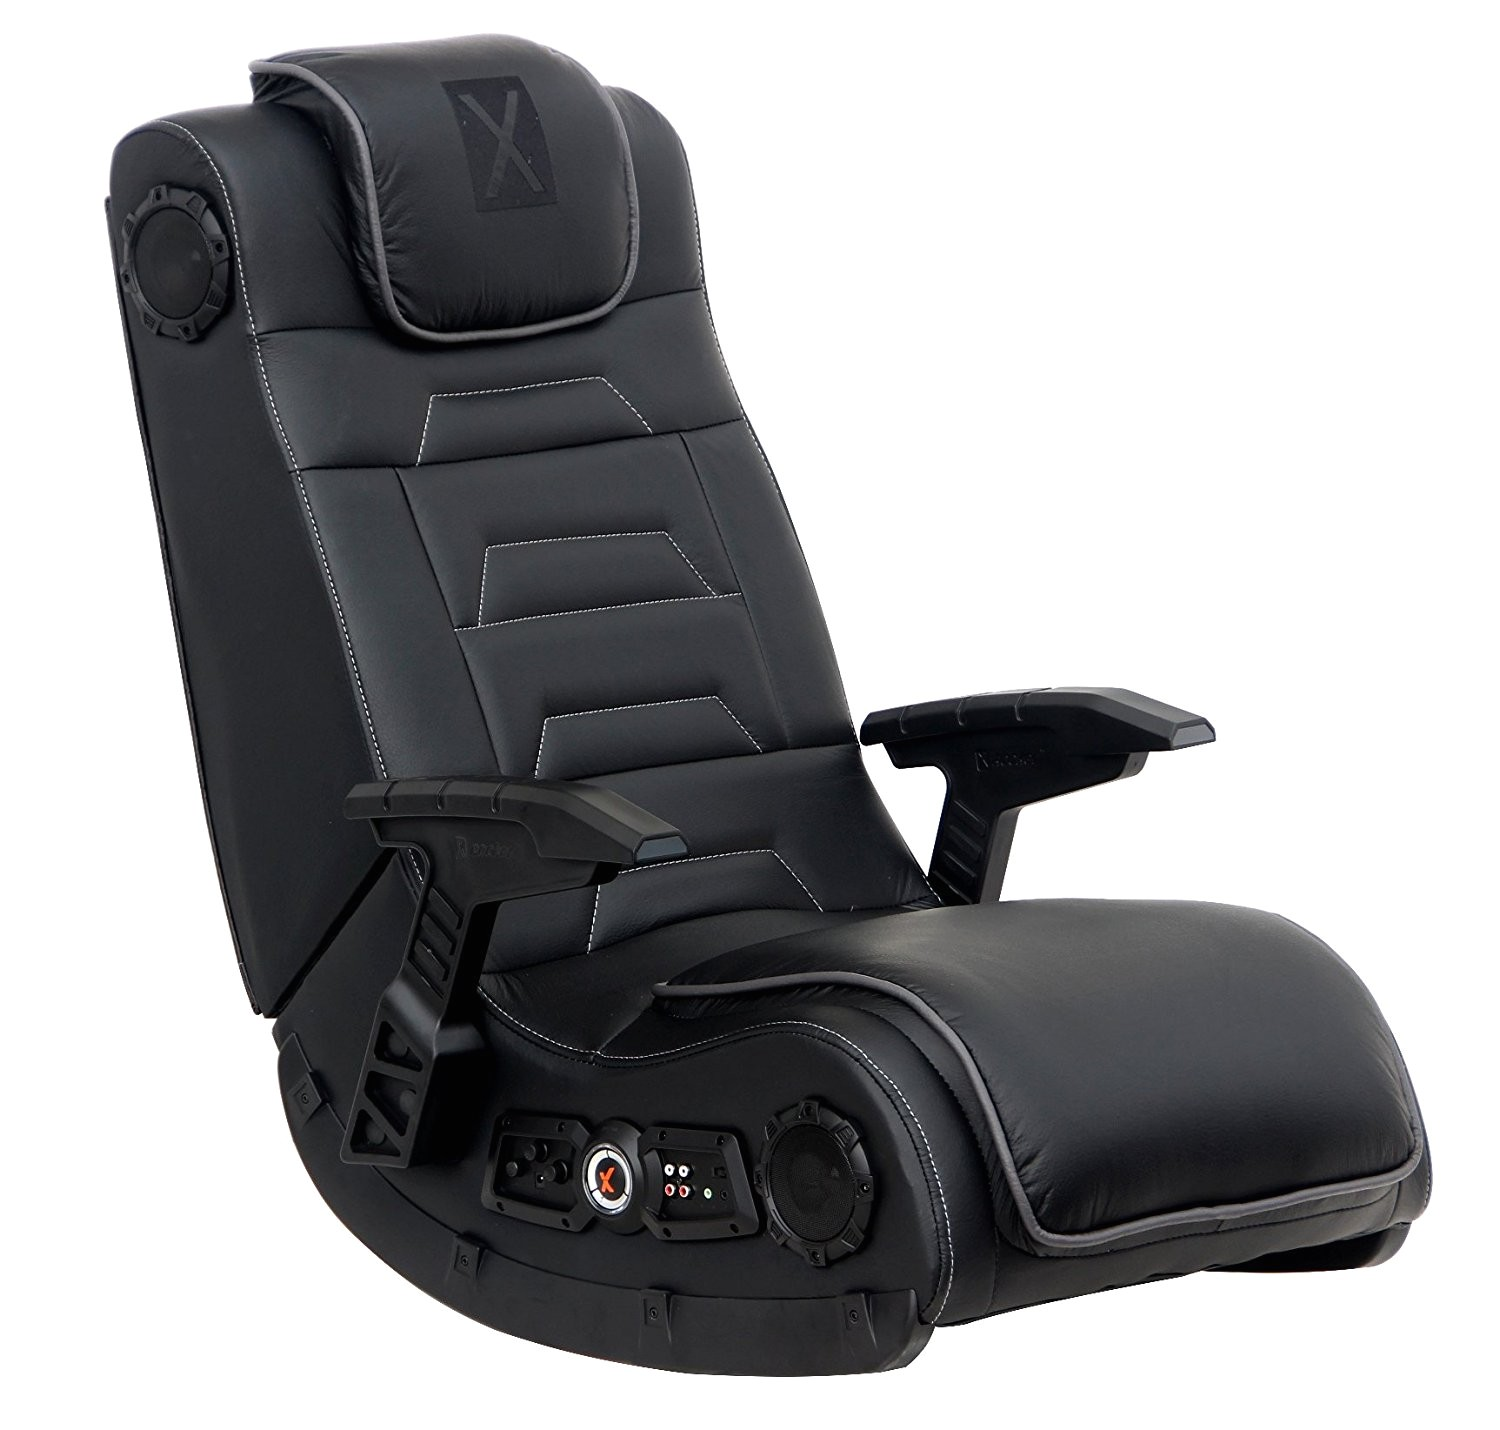 amazon com x rocker 51259 pro h3 4 1 audio gaming chair wireless sports outdoors